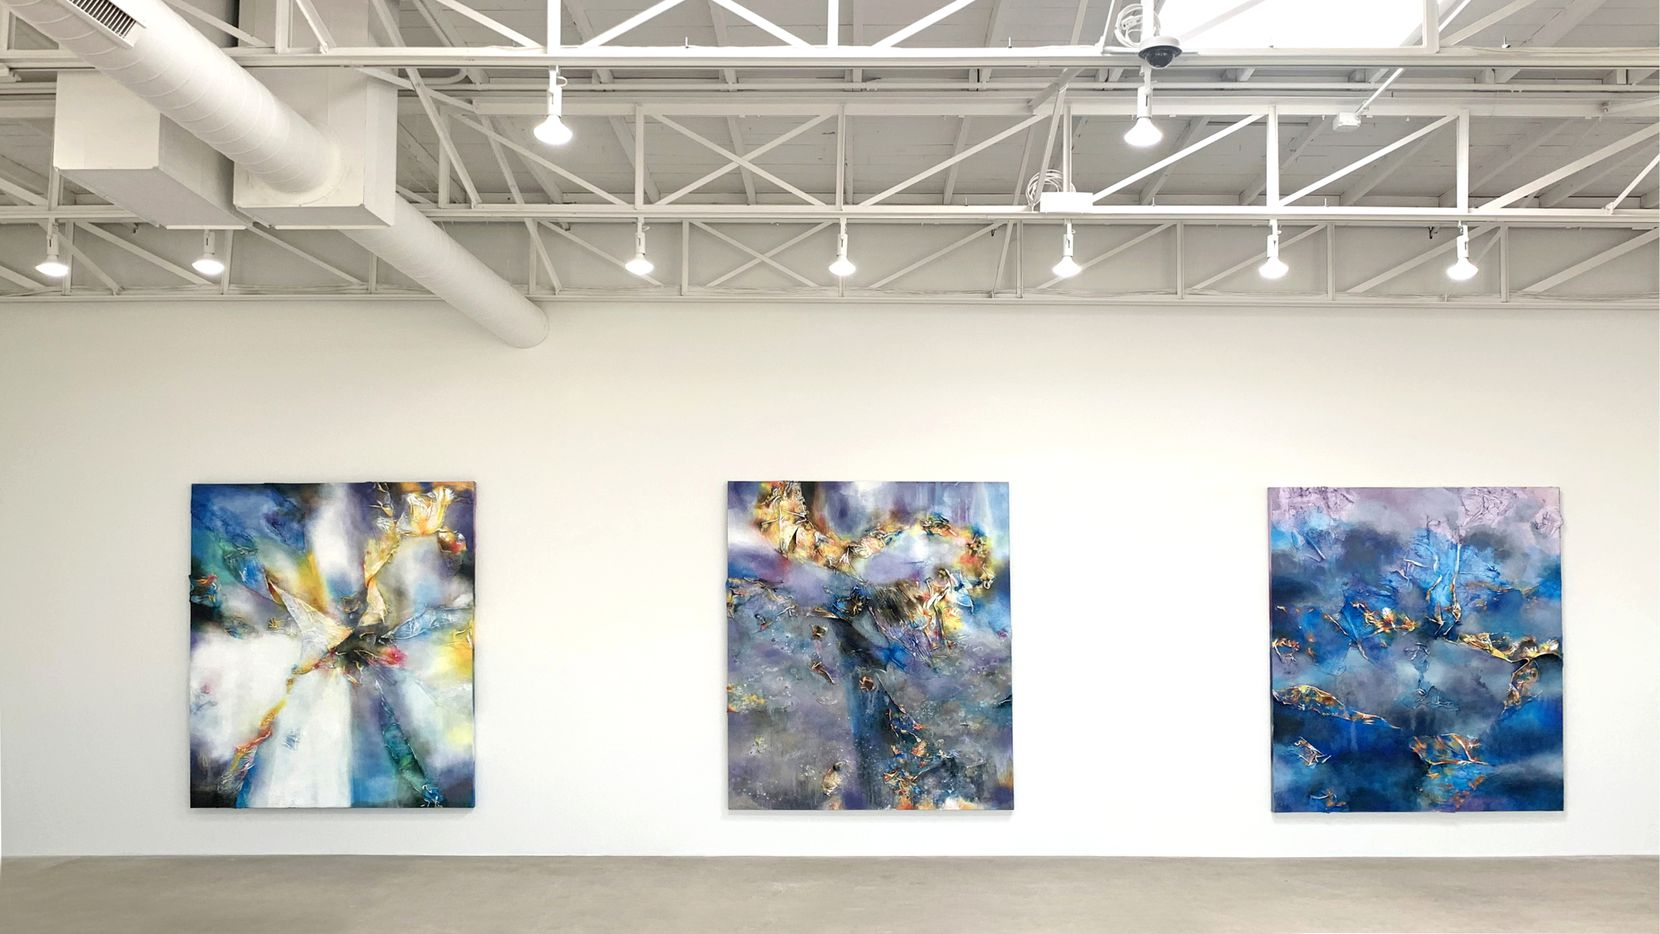 """These 2021 works by Leslie Martinez are the inaugural show at And Now gallery's new space on Dragon Street in Dallas. From left: """"Form Revealed Through Decantation (Sharp Angles of the Light Splintered in All Directions)""""; """"Your Life Became a Sundial When Your Body Dropped the Earth""""; """"Cistern and Artifact at the Golden Edge of the Sky Rim."""""""